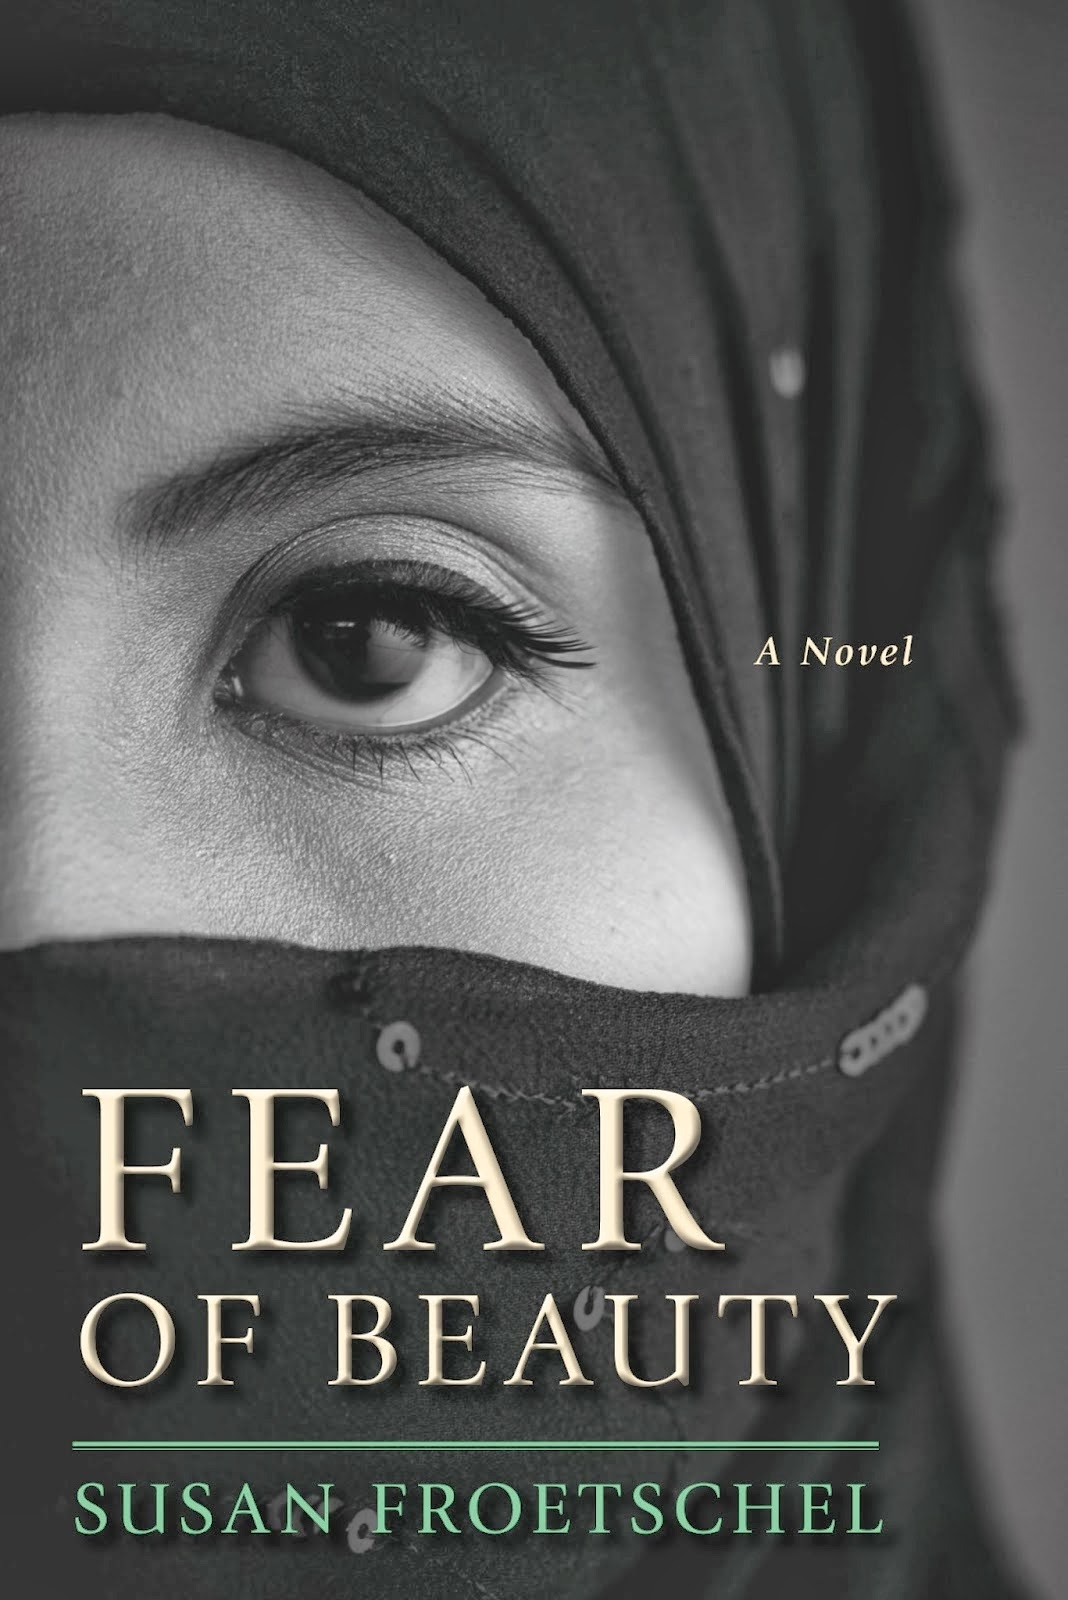 http://discover.halifaxpubliclibraries.ca/?q=title:fear%20of%20beauty